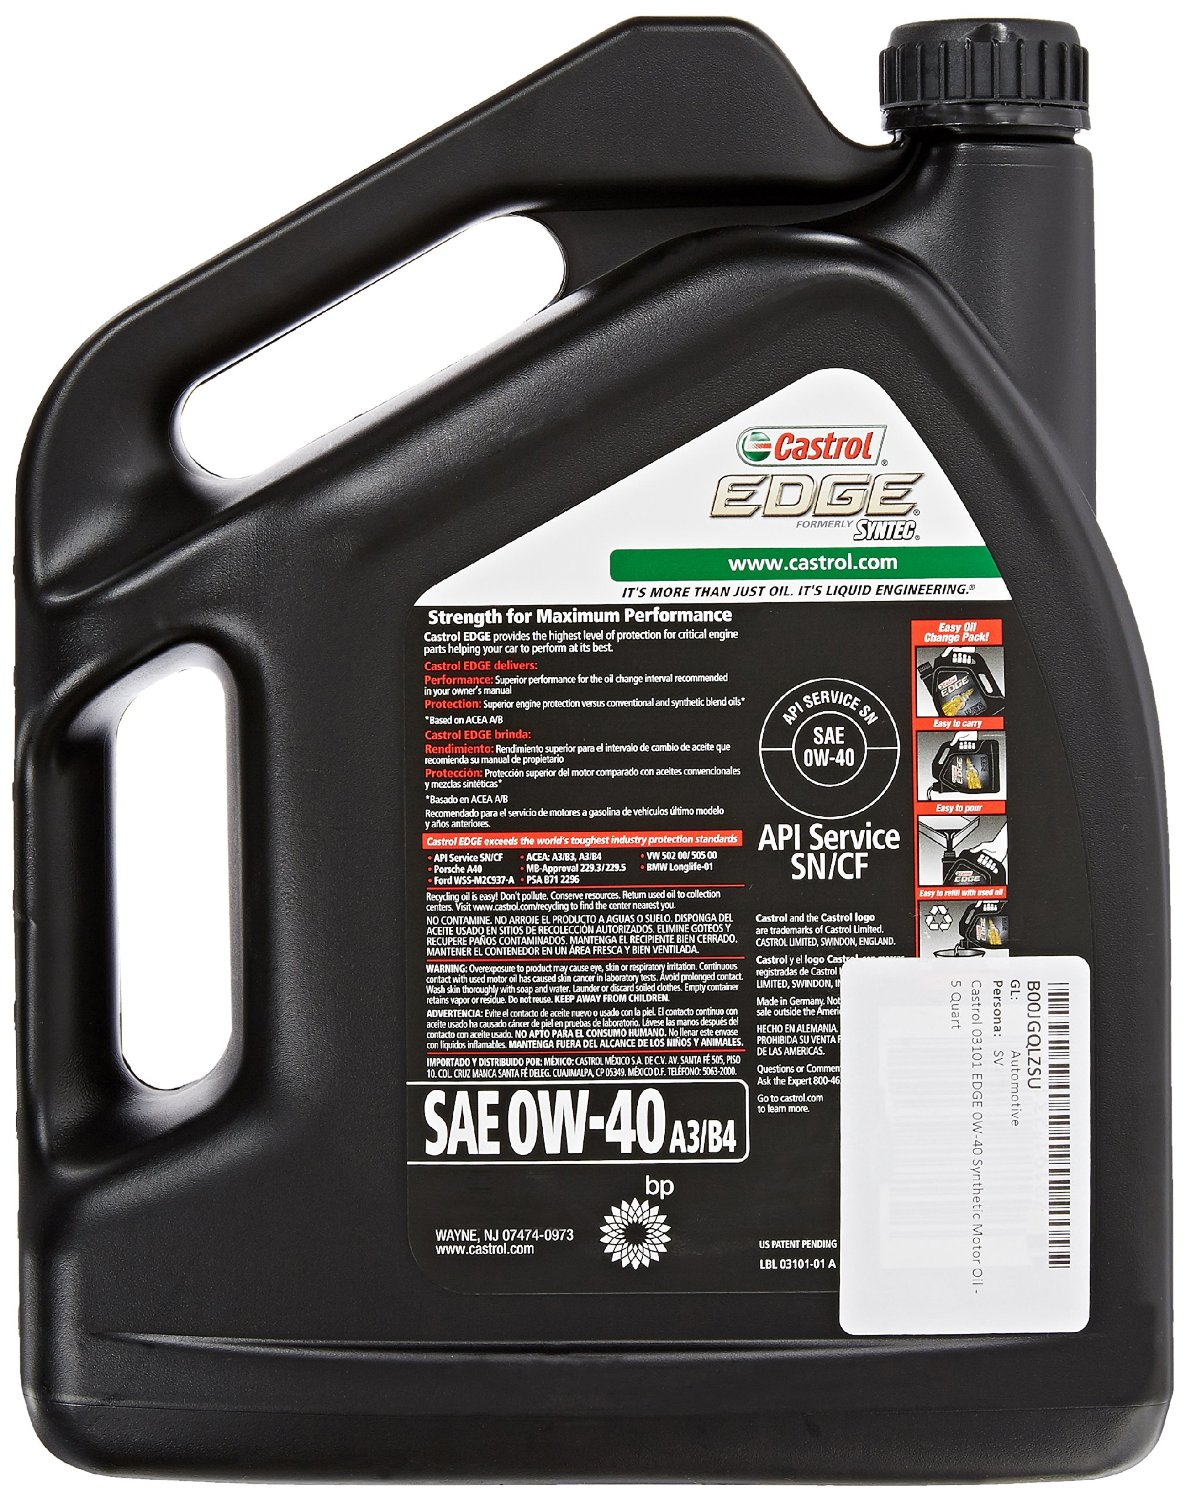 castrol edge 0w 40 usa synthetic motor oil 03101 4 73. Black Bedroom Furniture Sets. Home Design Ideas